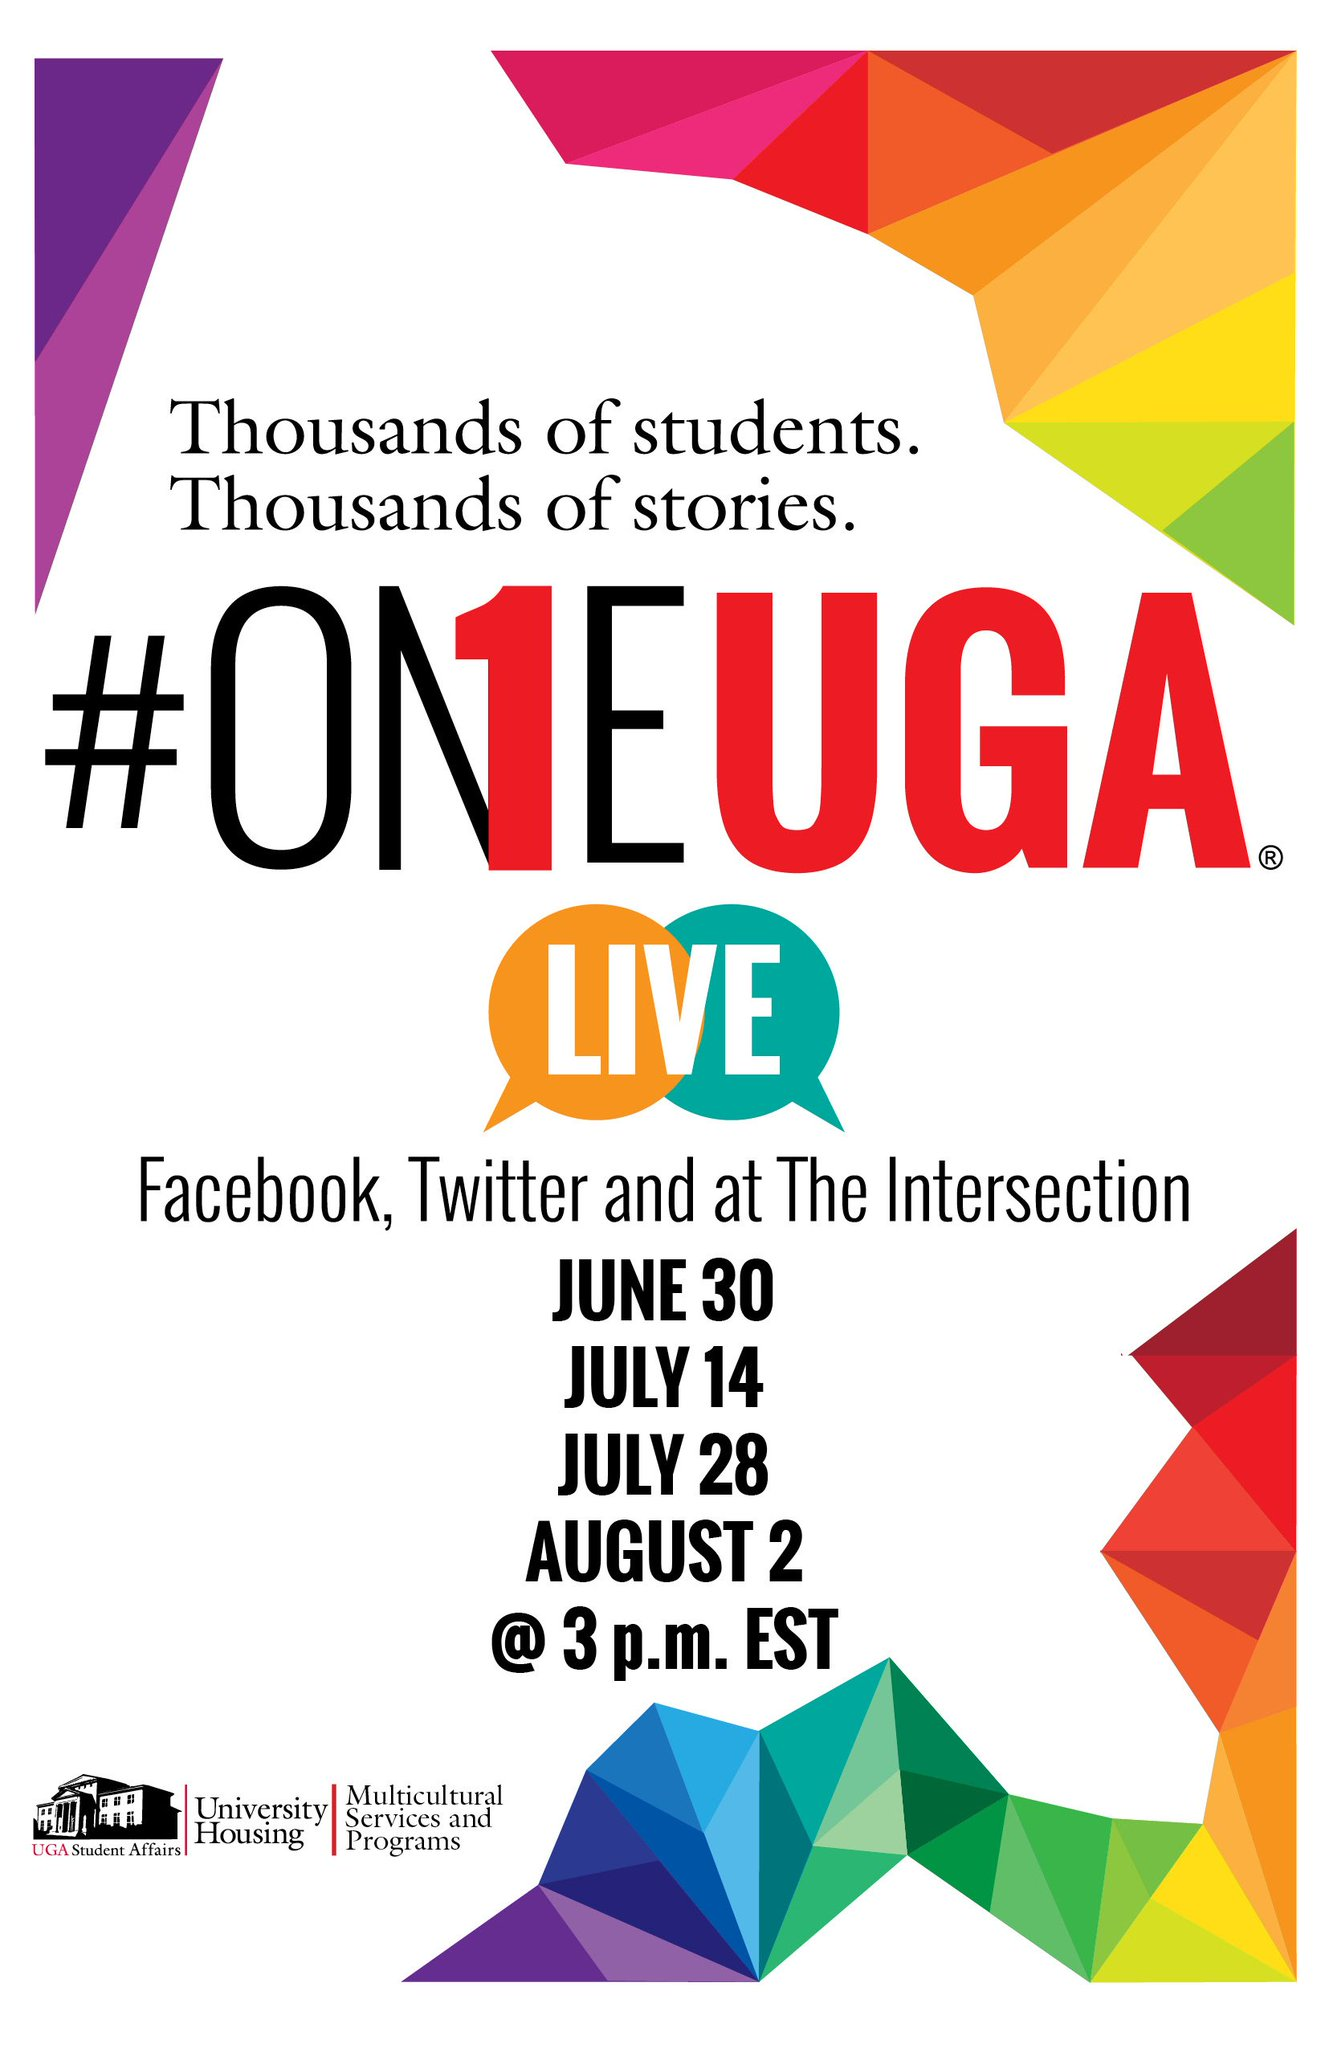 #OneUGA is a day away! #UGA20, current students, & alumni join to chat, get free swag, & more. #UGAOrientation https://t.co/lkk71m9dIS